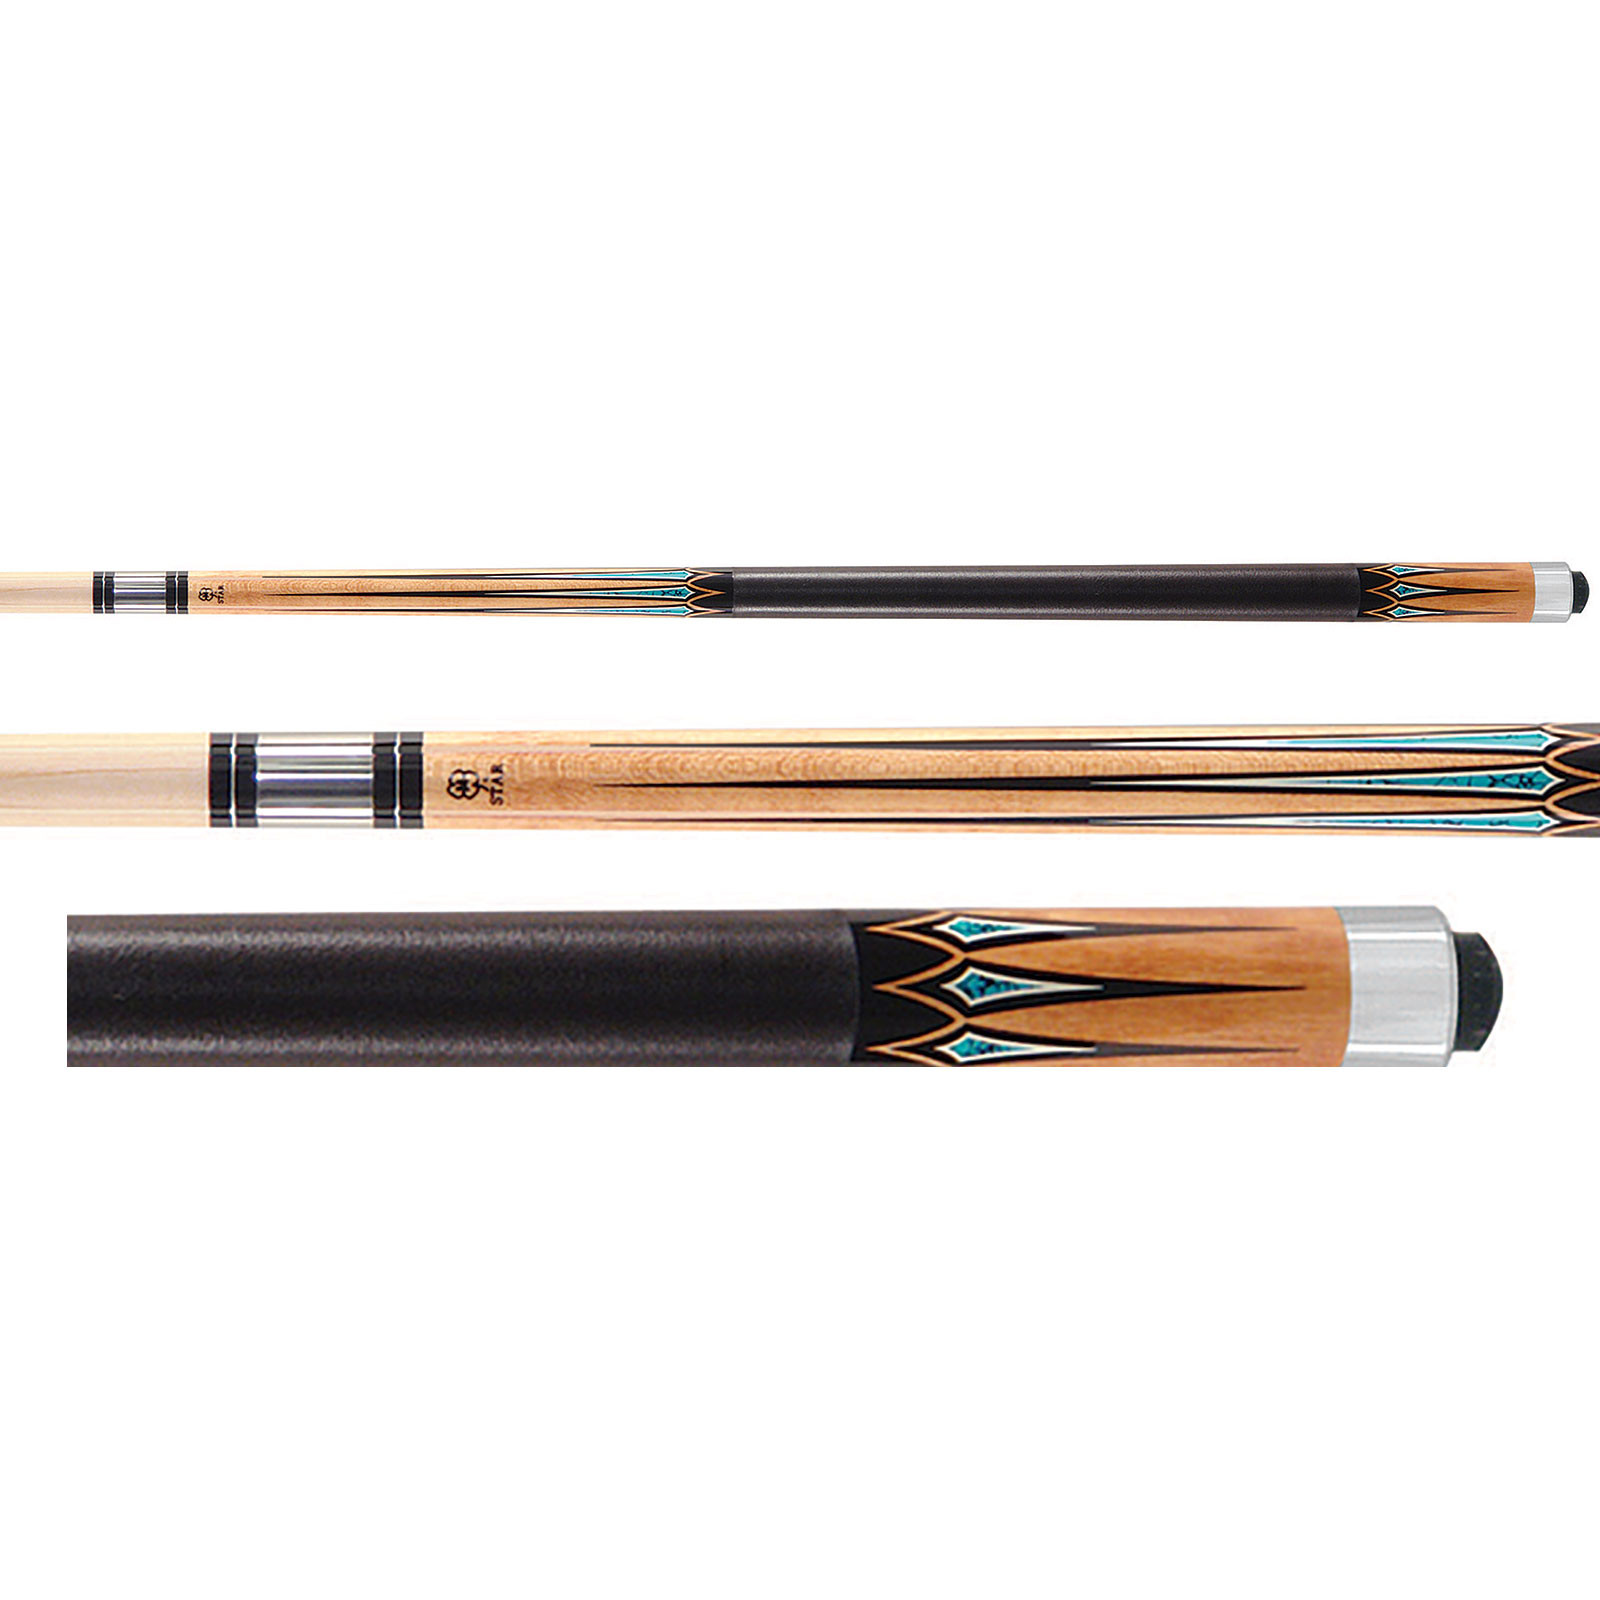 McDermott Star S49 Pool Cue - Tan/Turquoise